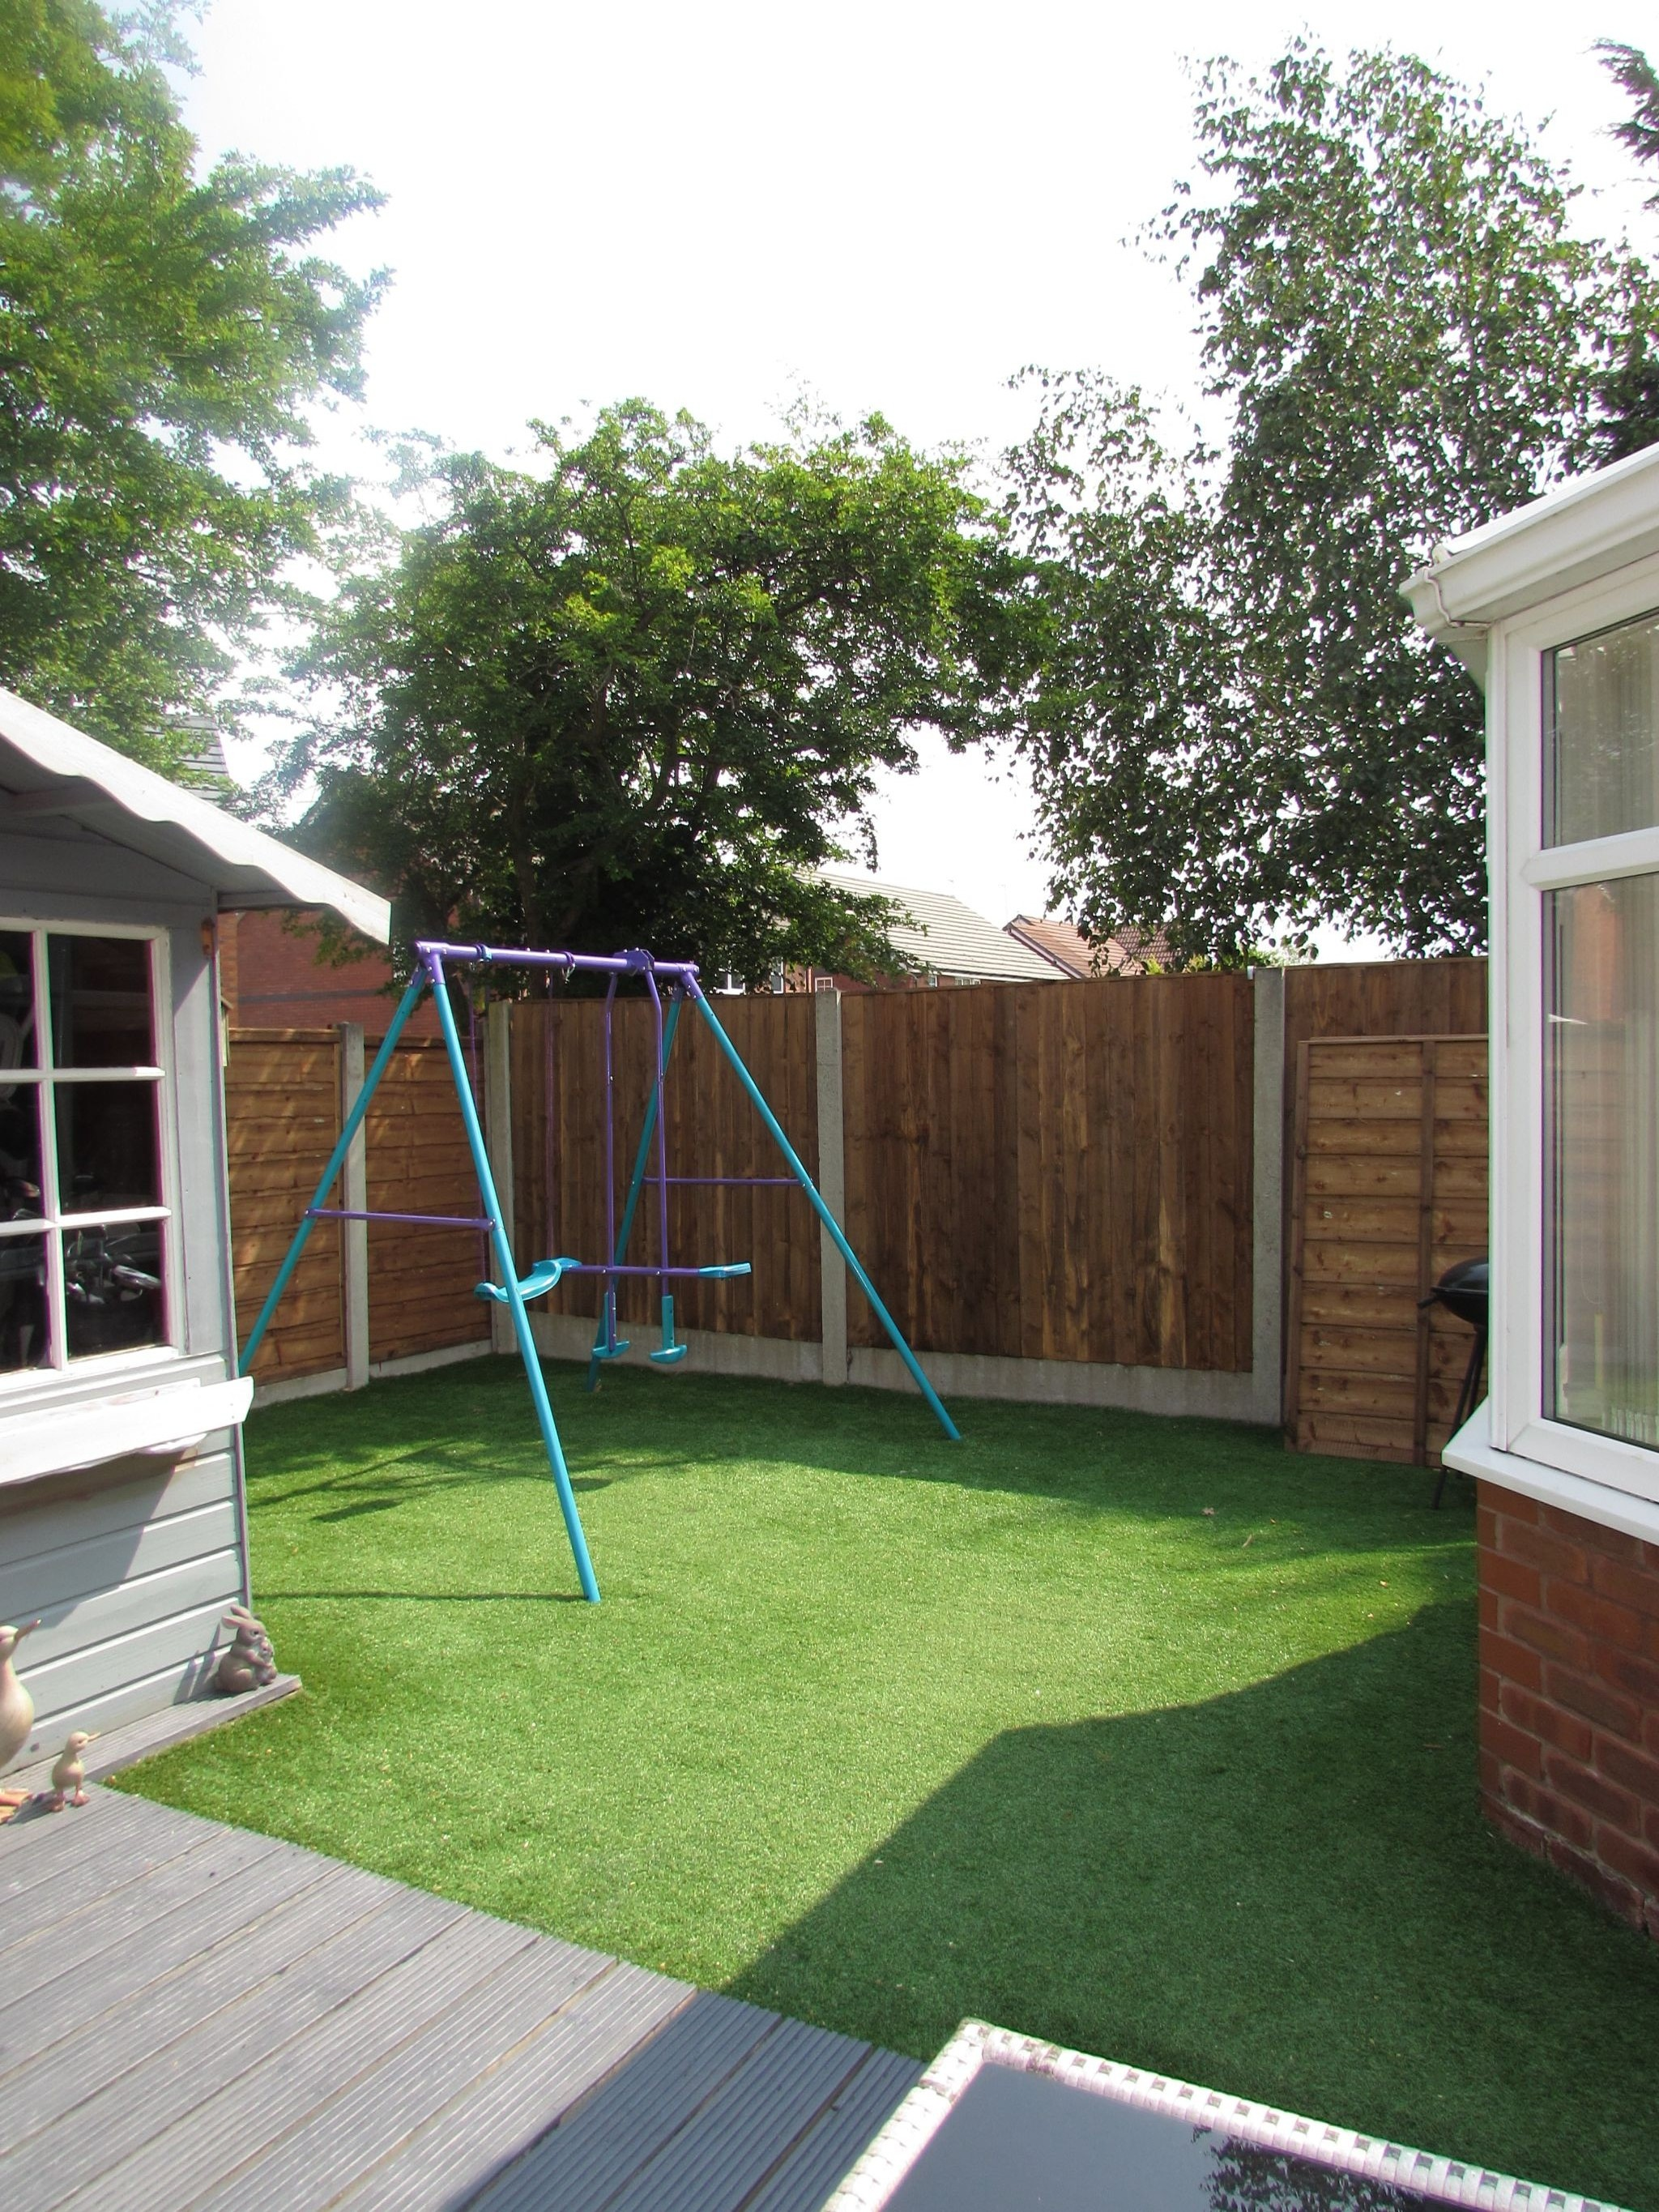 2 Bedroom Semi-detached House For Sale - Garden